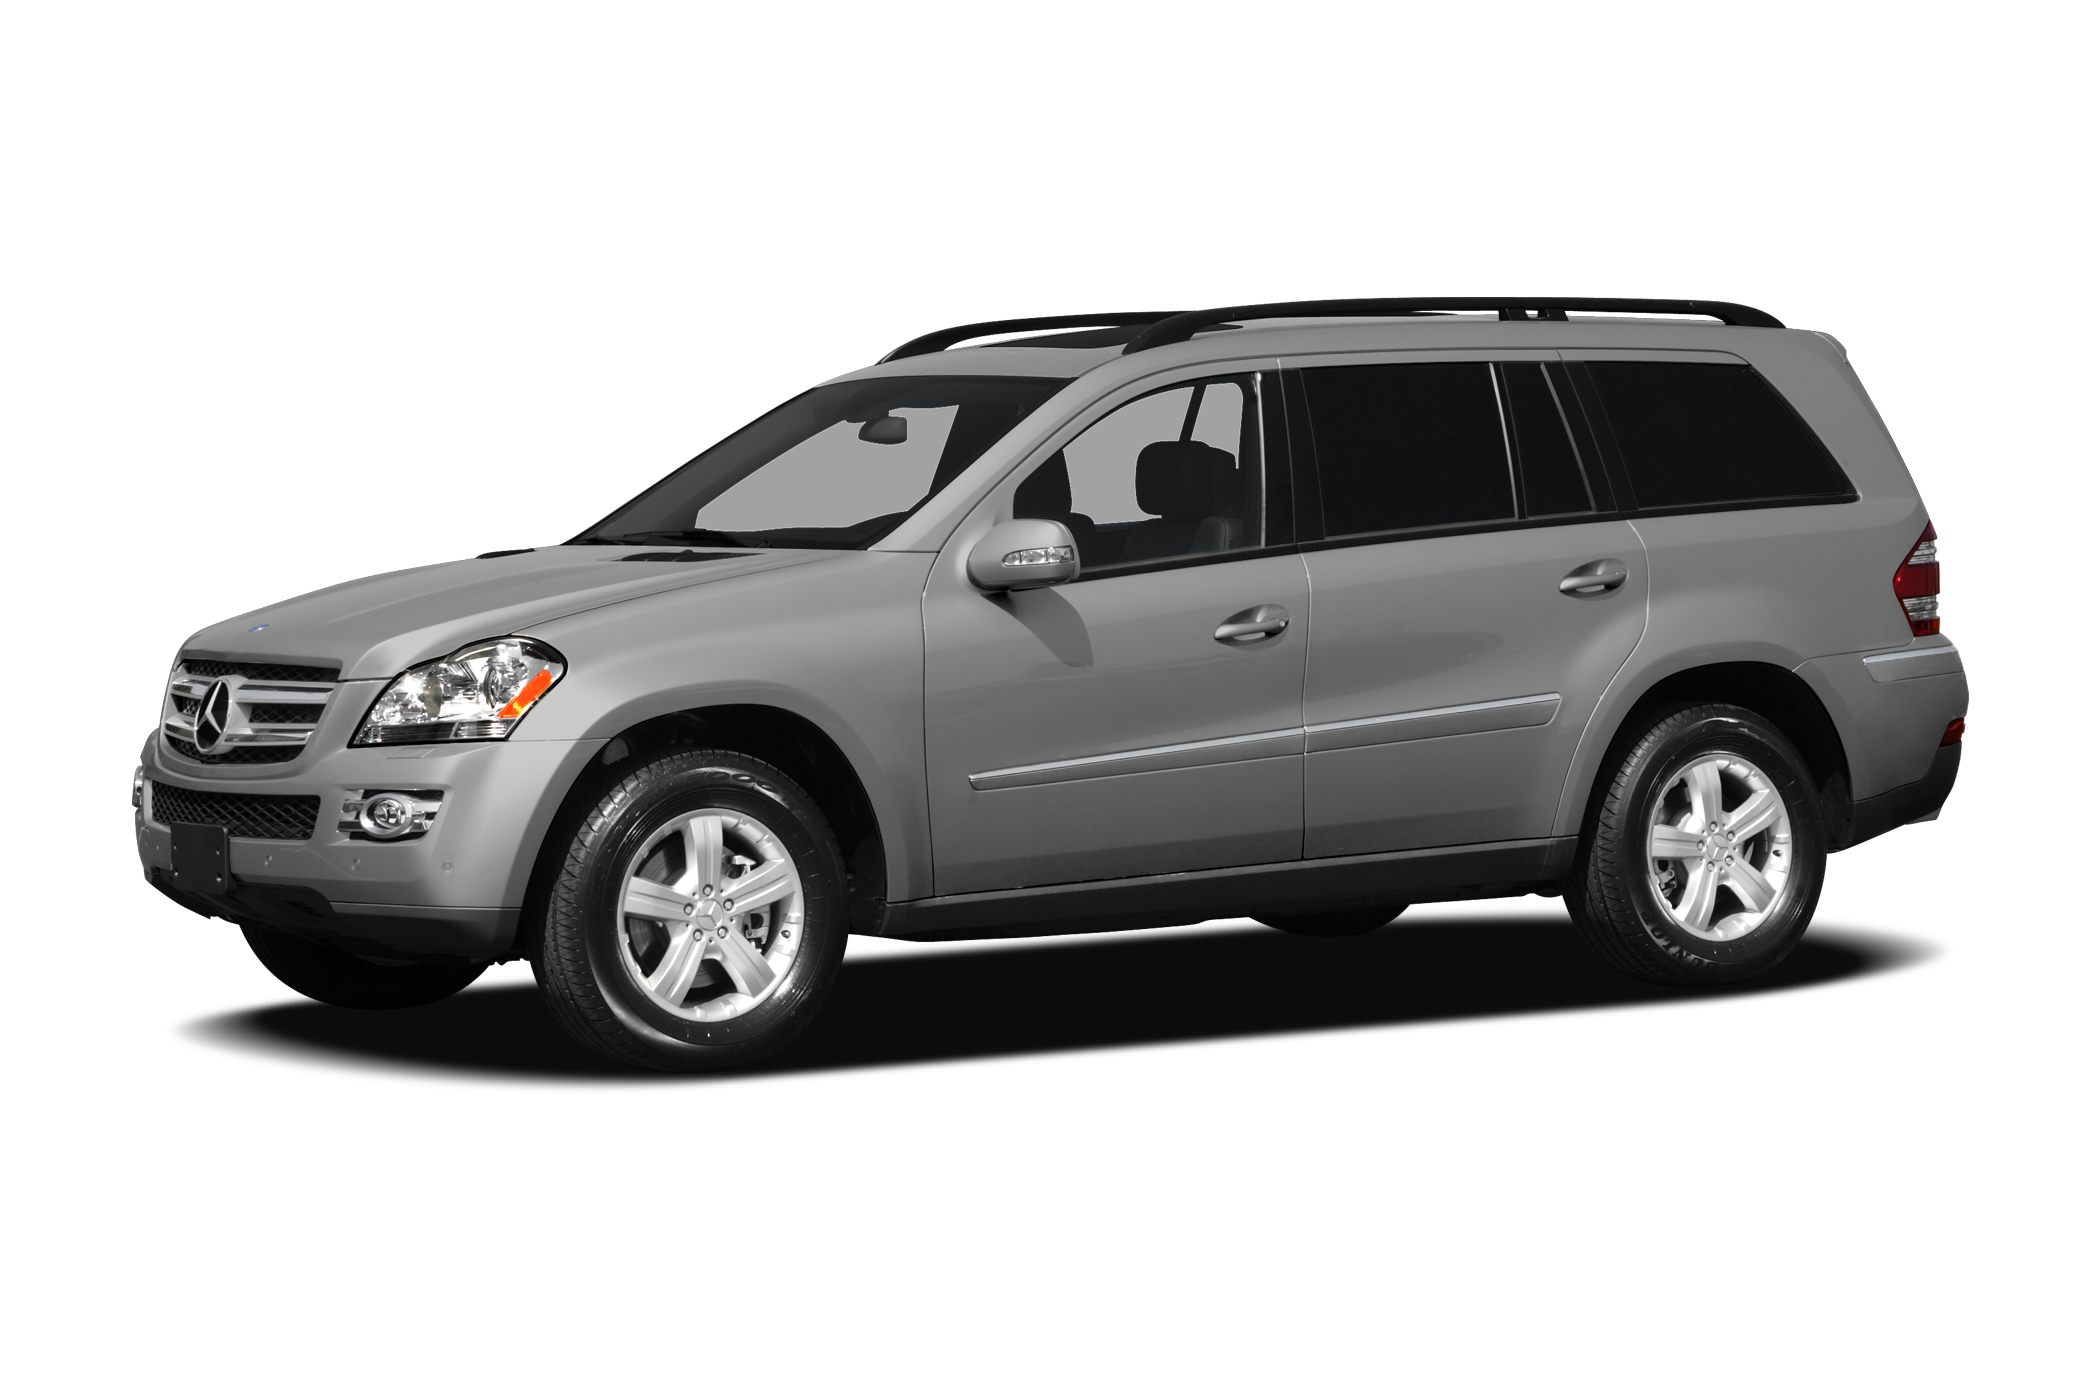 2008 Mercedes-Benz GL-Class GL450 4MATIC SUV for sale in Virginia Beach for $22,995 with 72,751 miles.